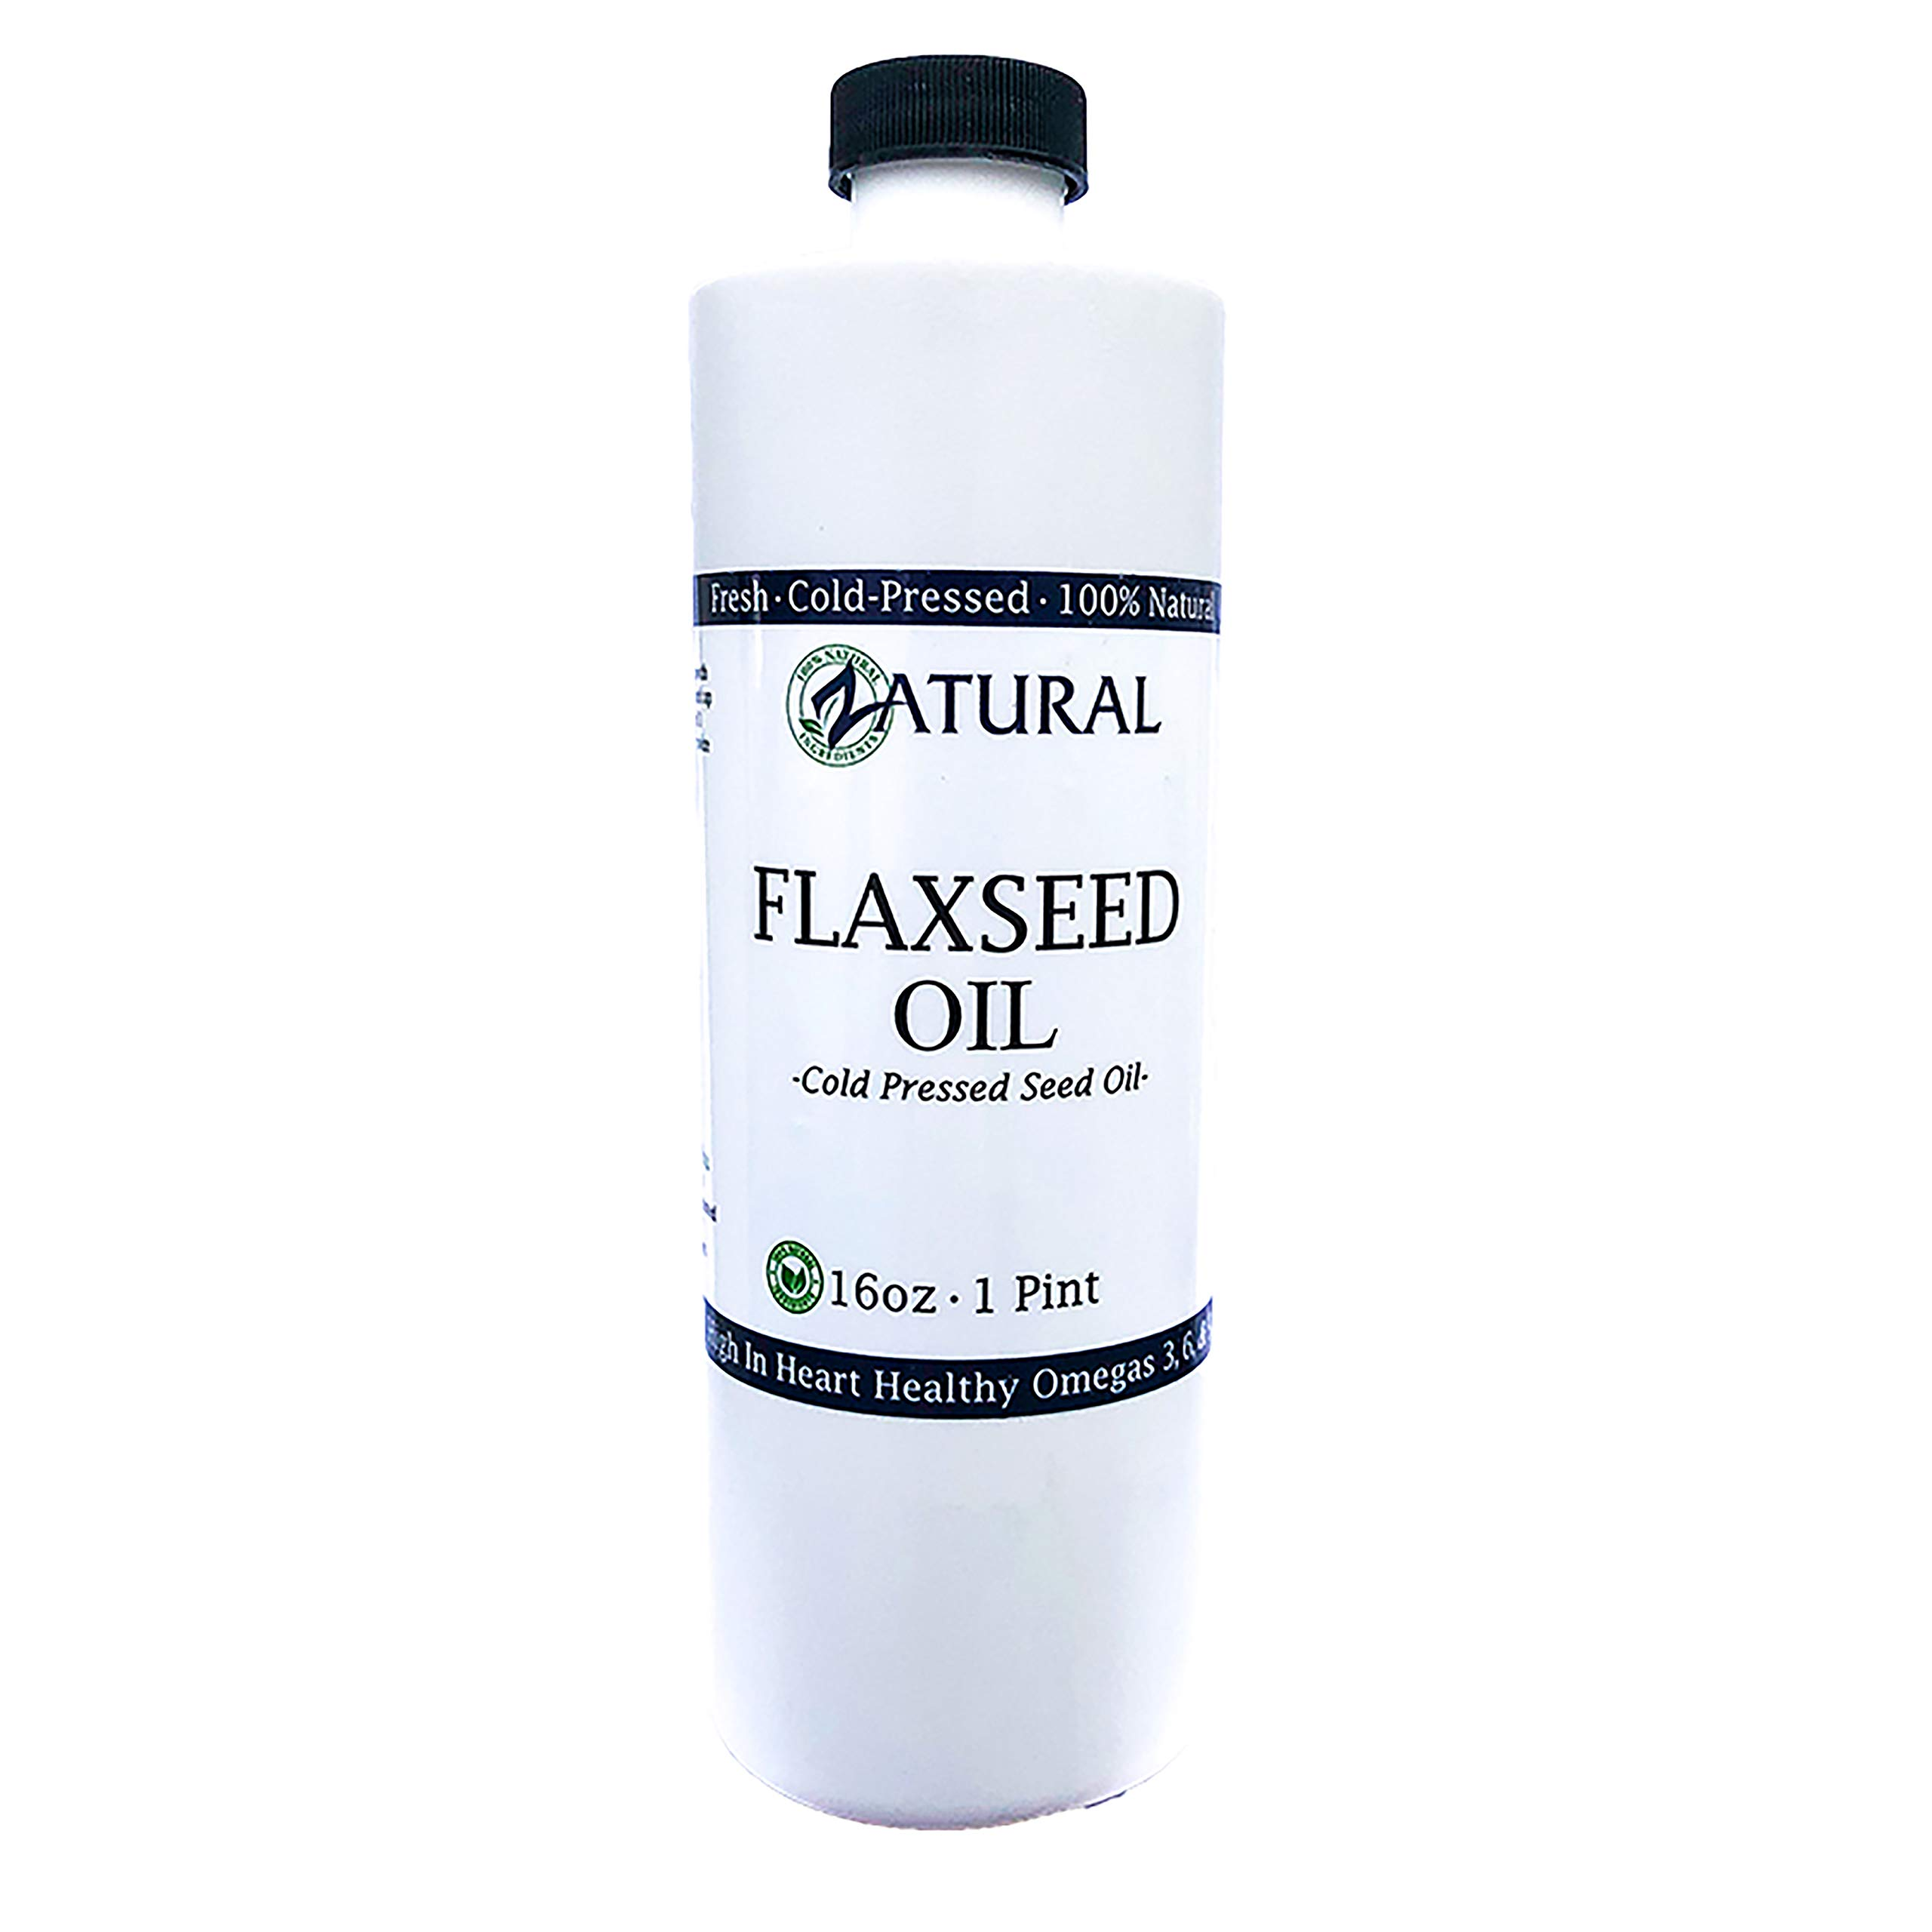 FlaxSeed Oil - 100% Pure Flax Seed Oil - 0 Additives - 0 Fillers - Cold Pressed - Unrefined (16 Ounce) by Zatural